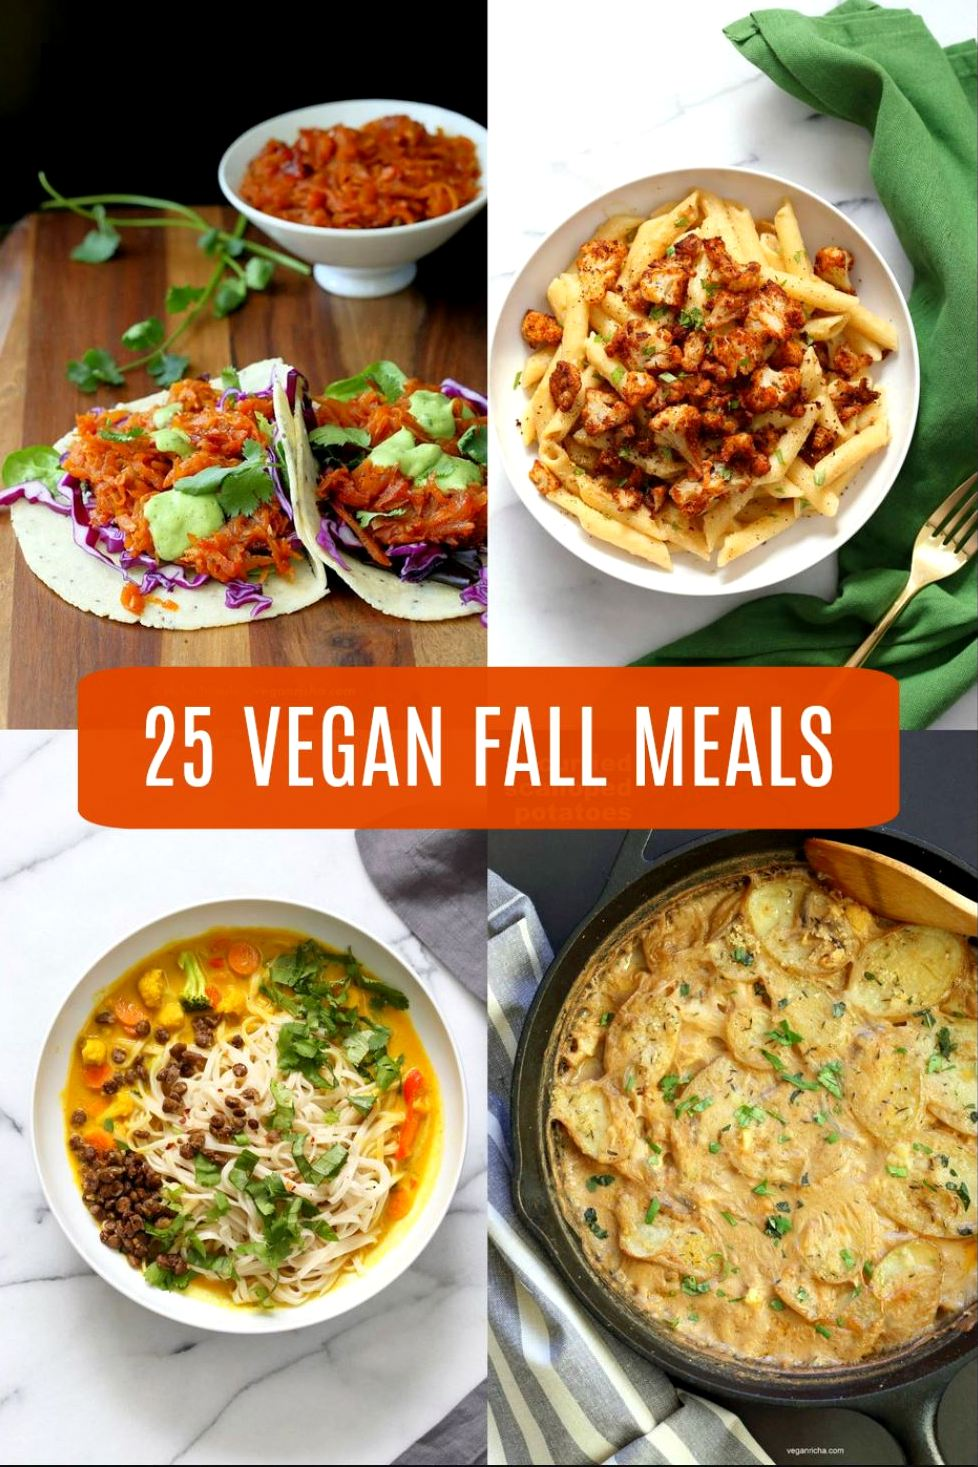 25 Vegan Fall Meals for a chilly day ? 1 Pot Gluten-free options